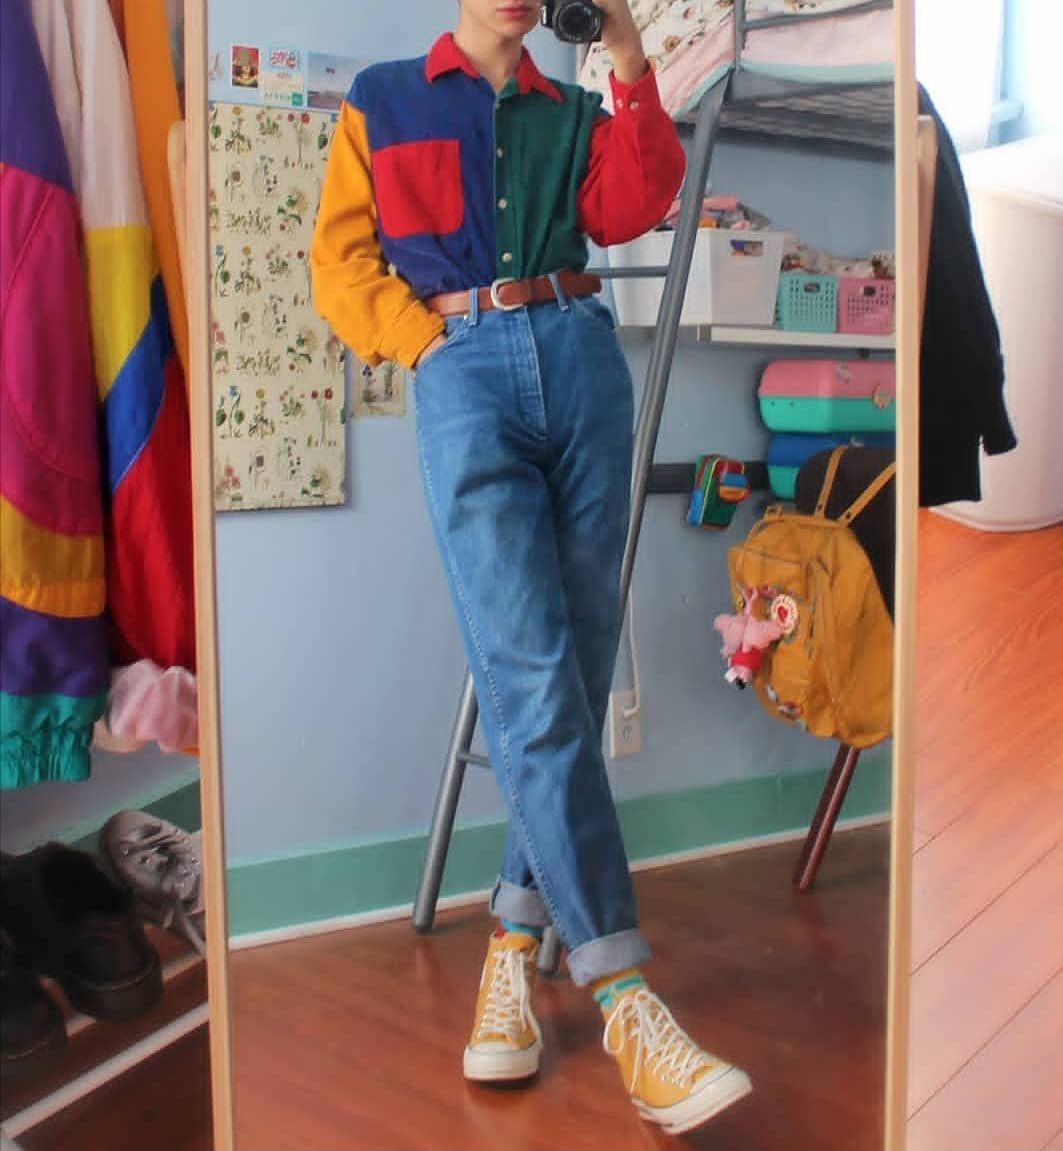 Aesthetic Grunge Vintage On Instagram Score This Outfit 0 To 10 Grunge Grungegirl Aesthe Retro Outfits Fashion Inspo Outfits Fashion